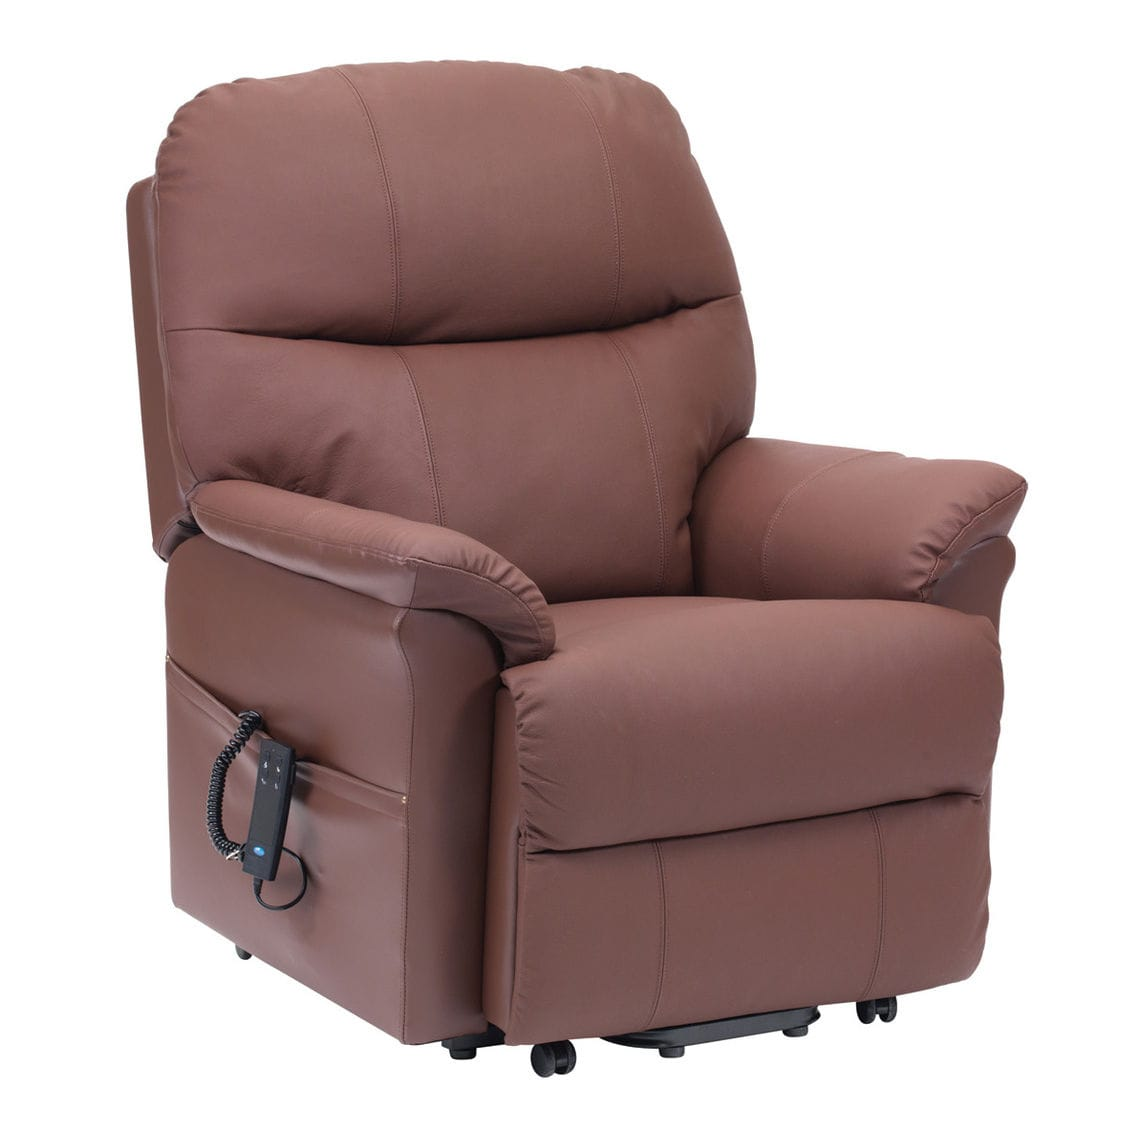 Lift lift chair / electric - Lars  sc 1 st  MedicalExpo : medical lift recliners - islam-shia.org